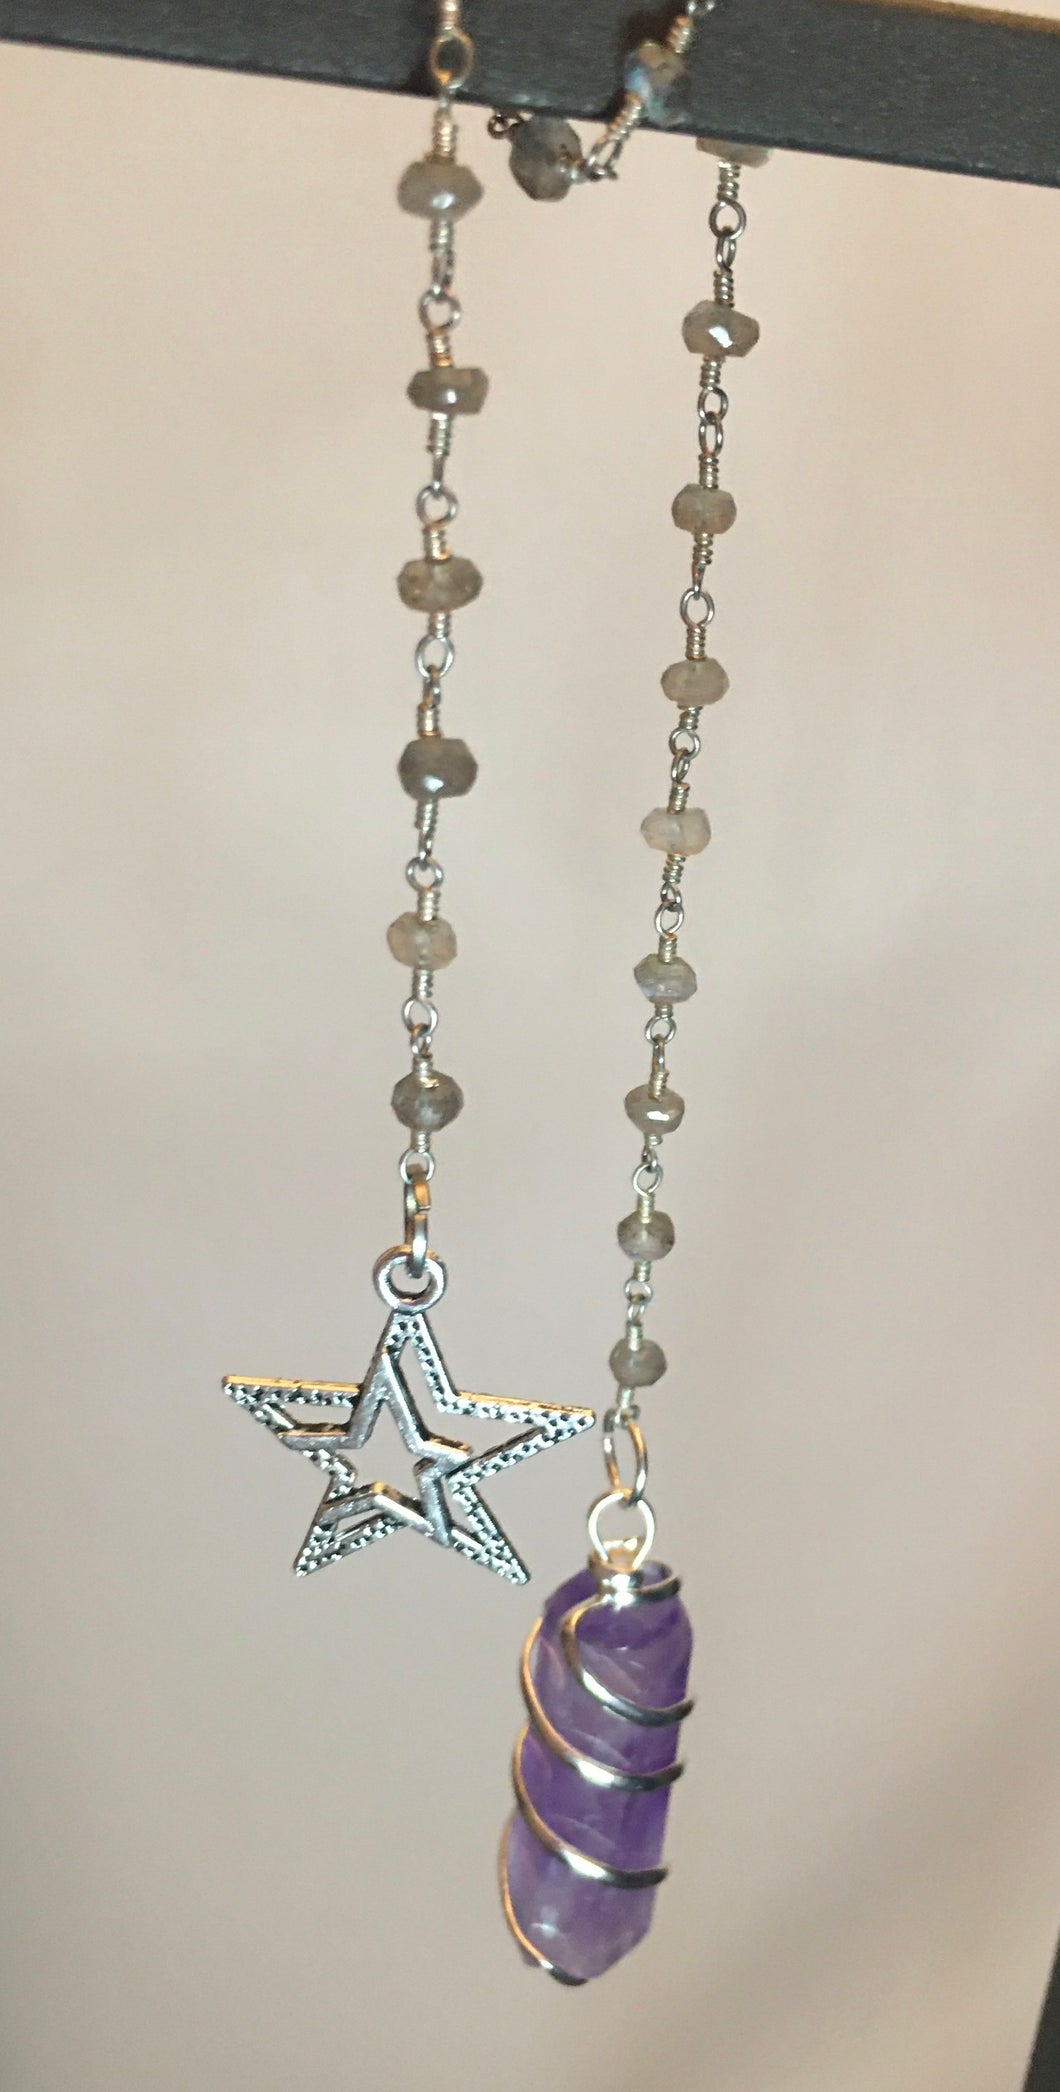 Amethyst Point on Labradorite Satelite Silver Chain & Double Star Charm Fob